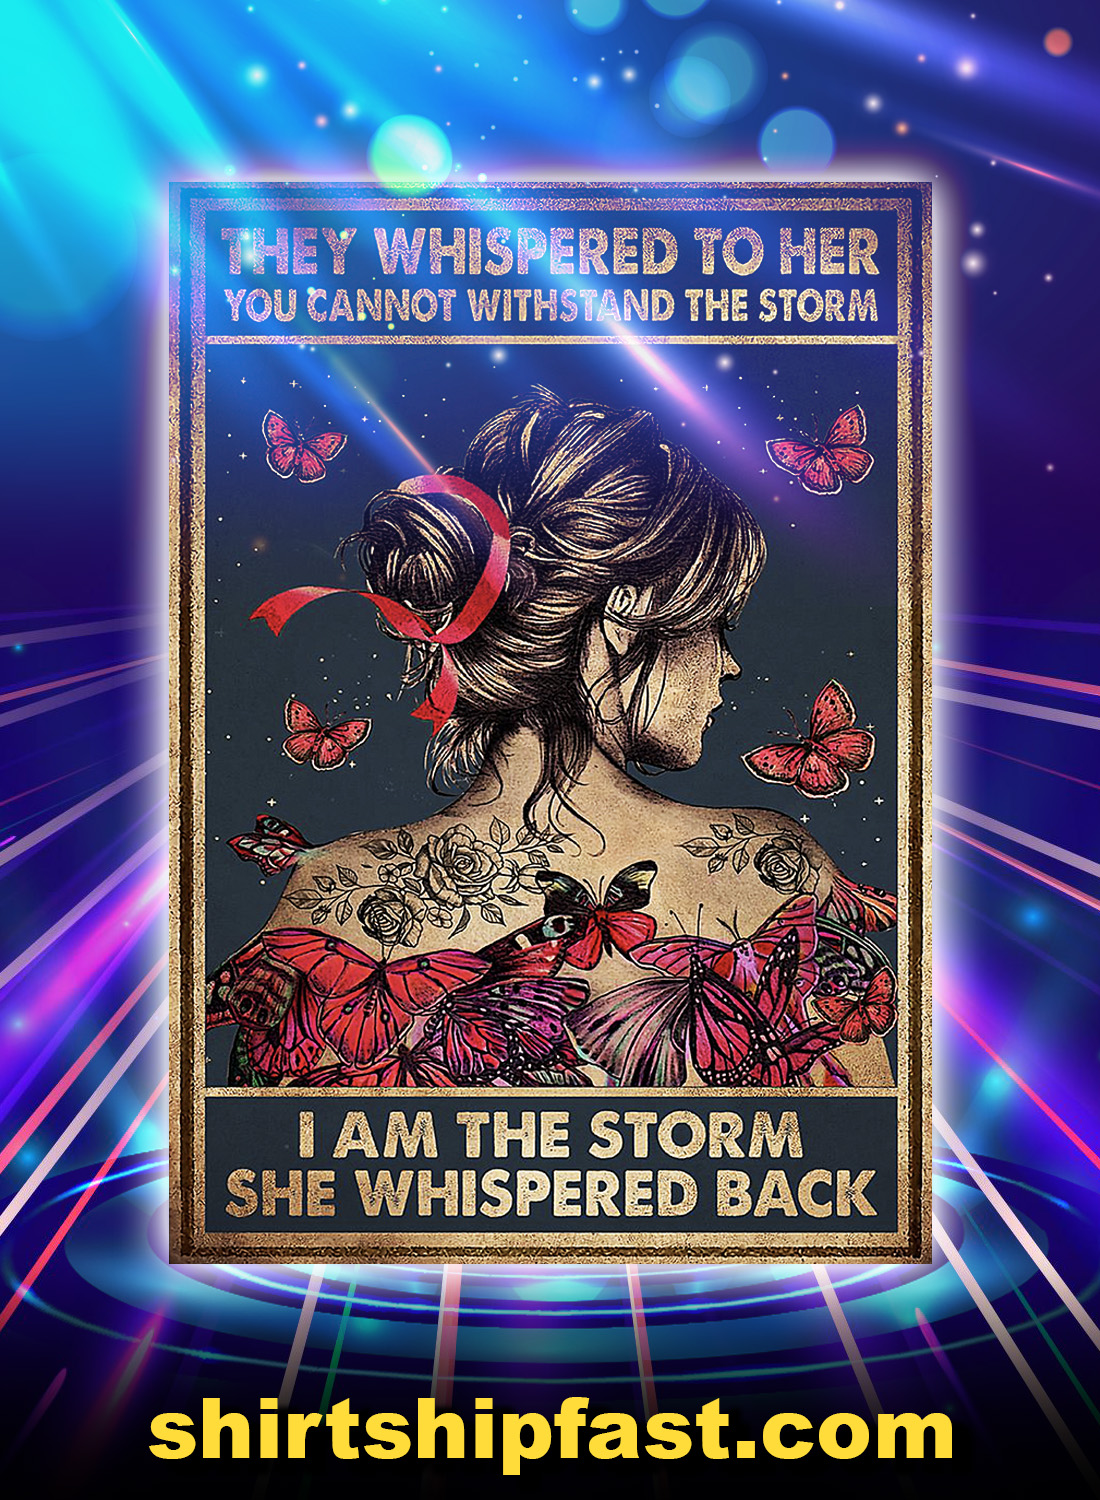 Breast cancer butterfly they whispered to her poster - A4